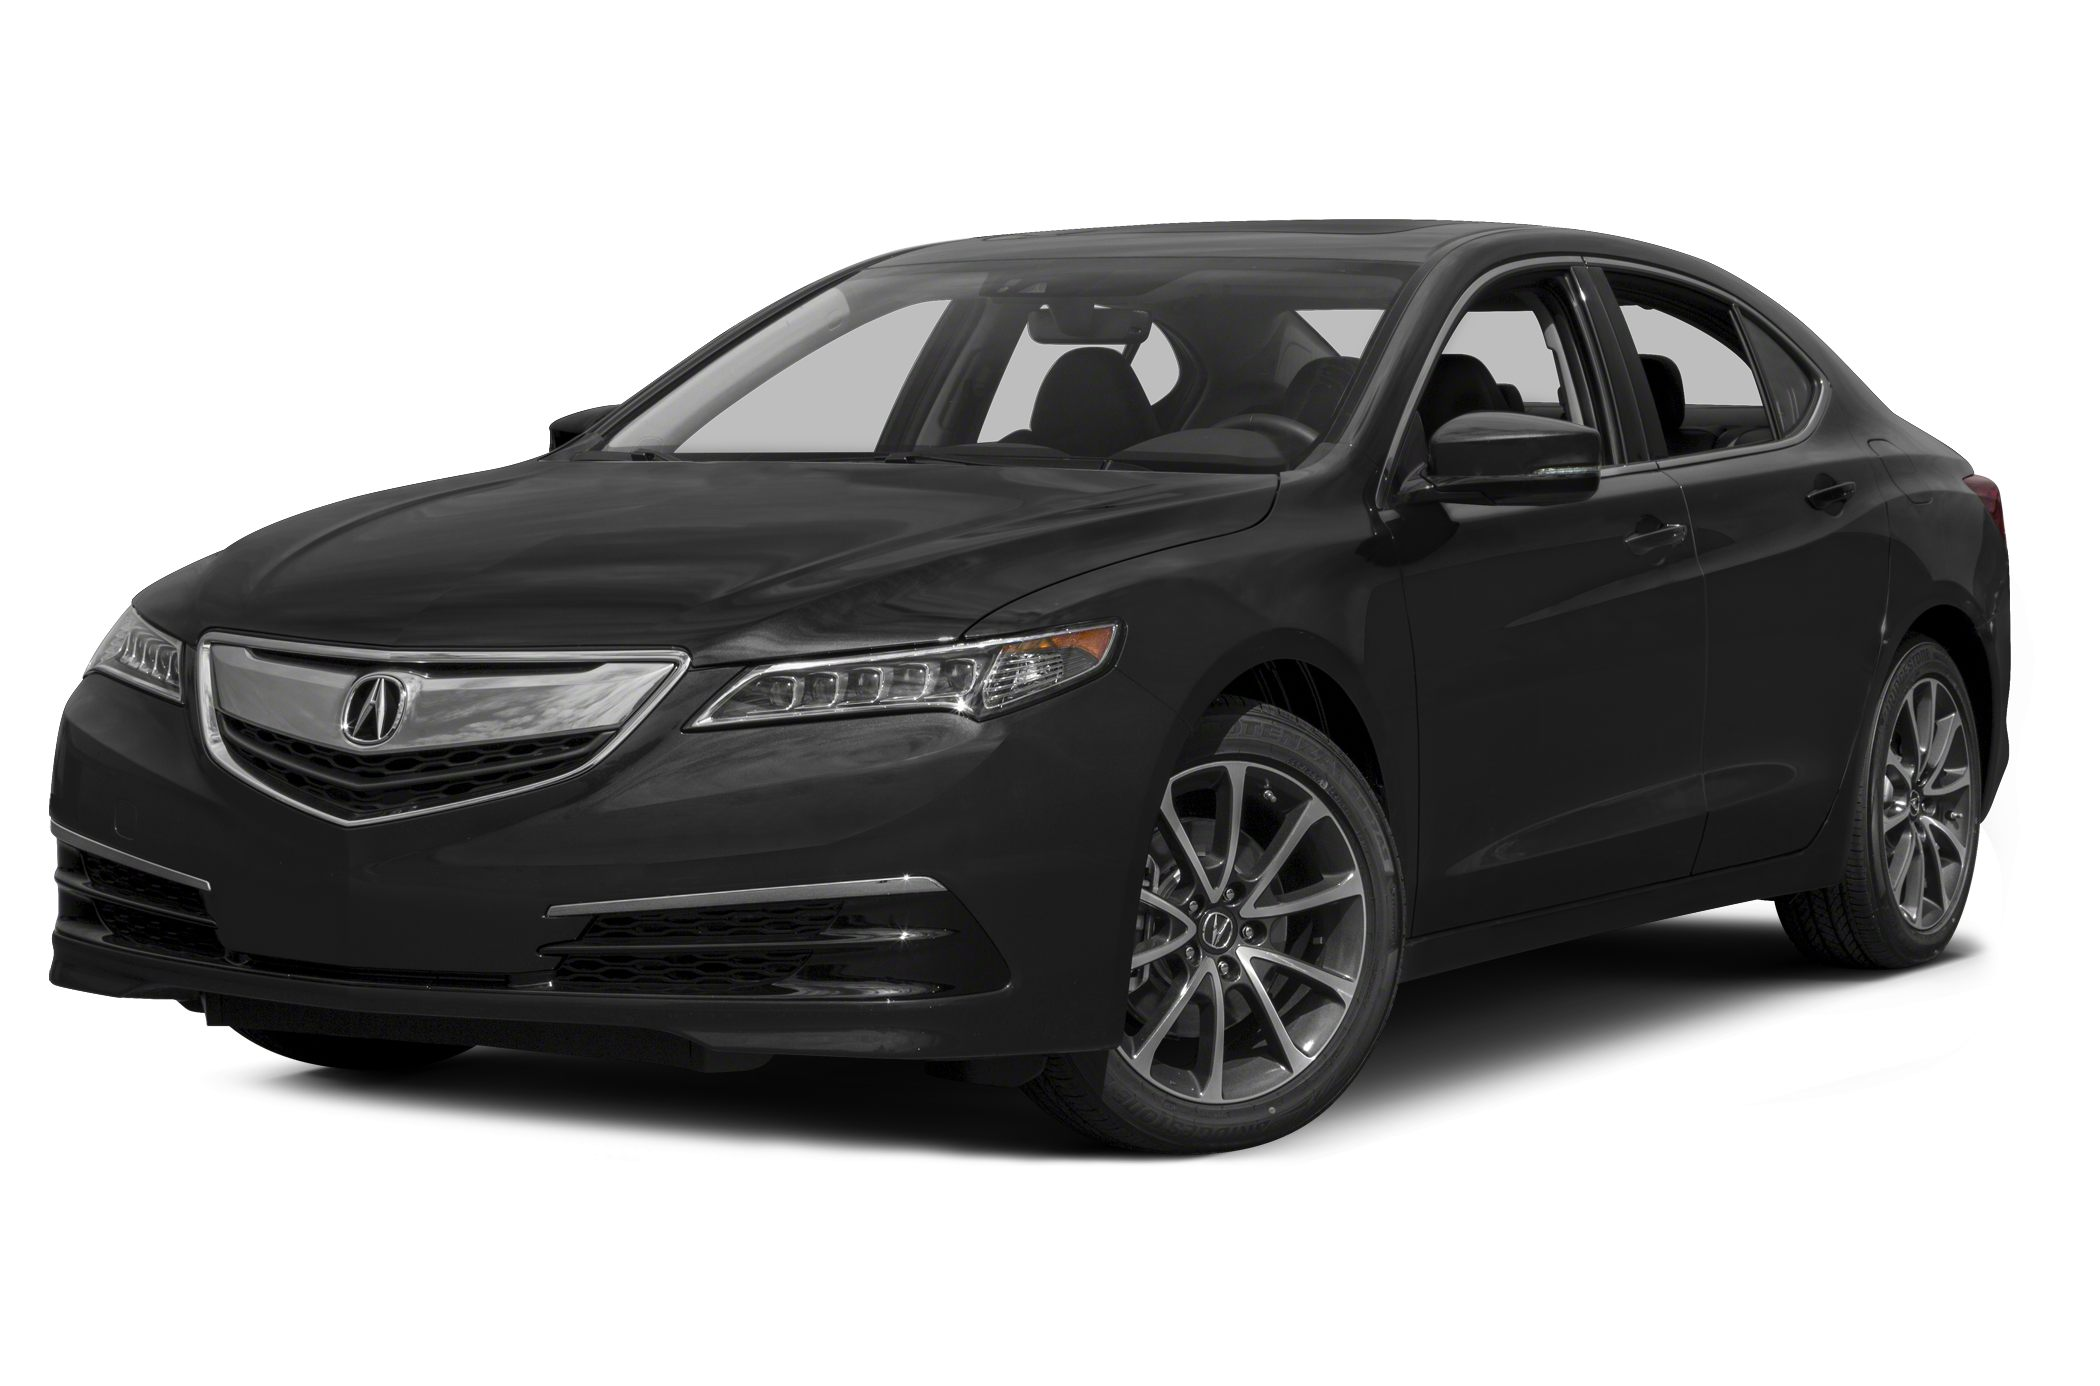 2015 Acura TLX V6 Tech Sedan for sale in Dallas for $39,375 with 10 miles